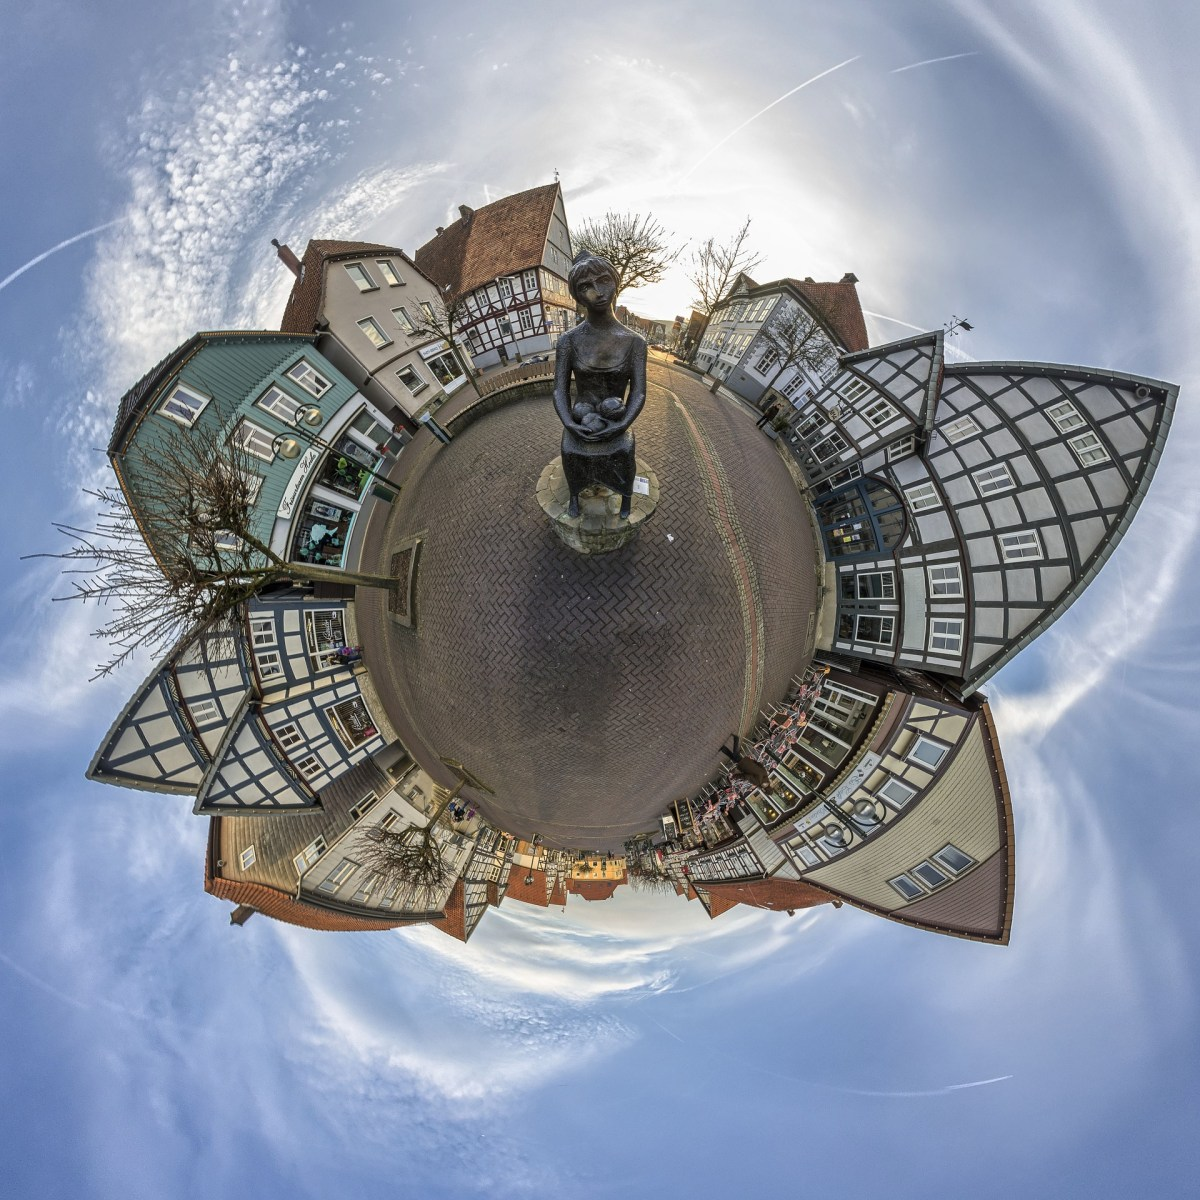 A small town imagined as a small planet